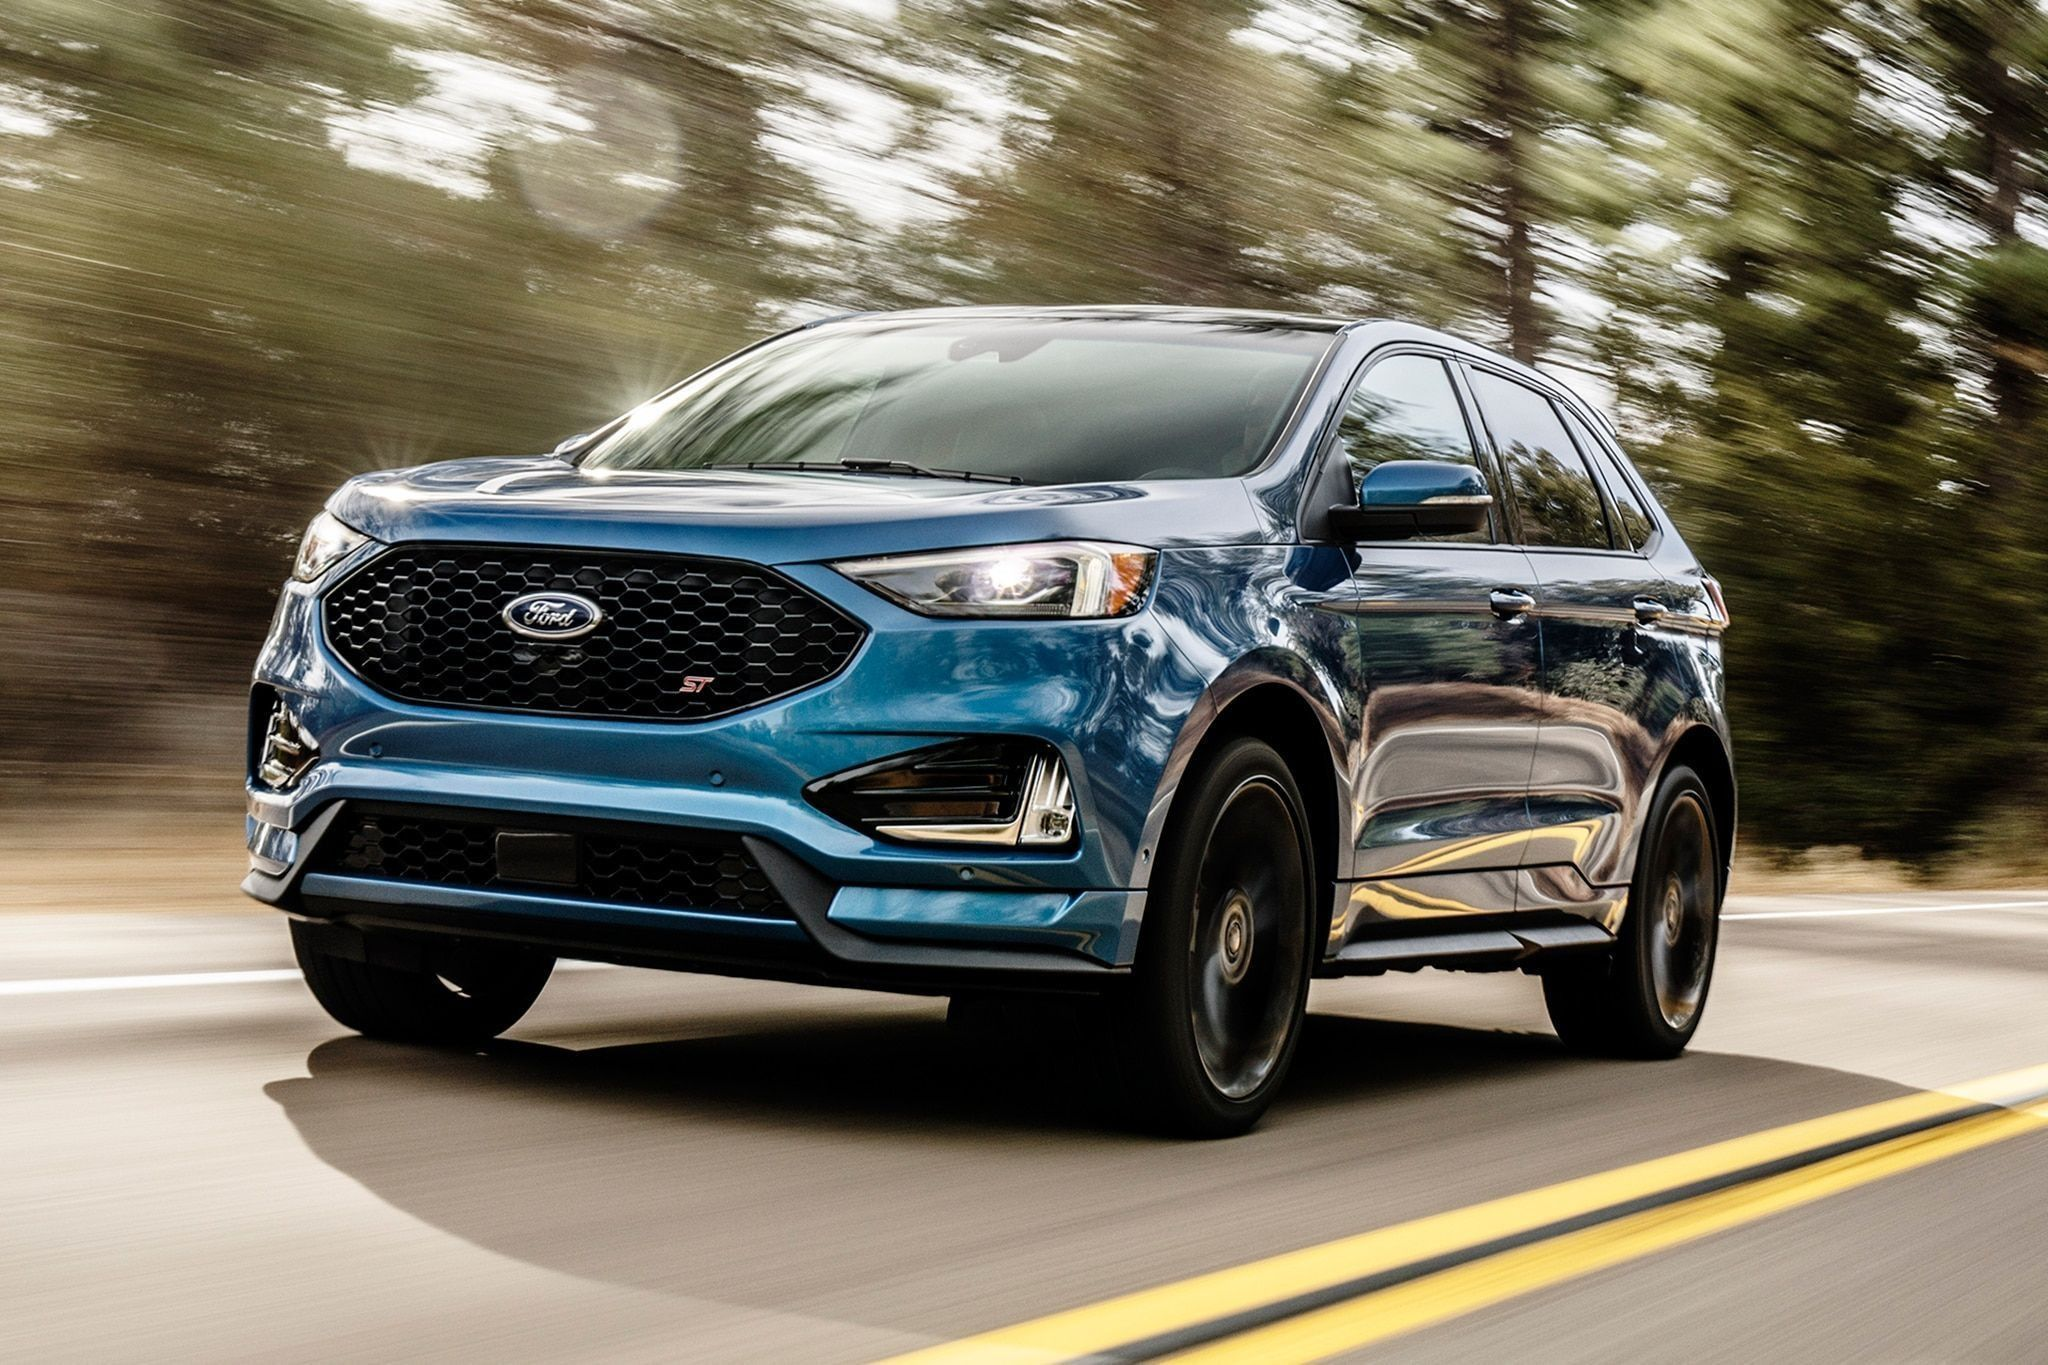 See Models And Pricing As Well As Photos And Videos About Ford